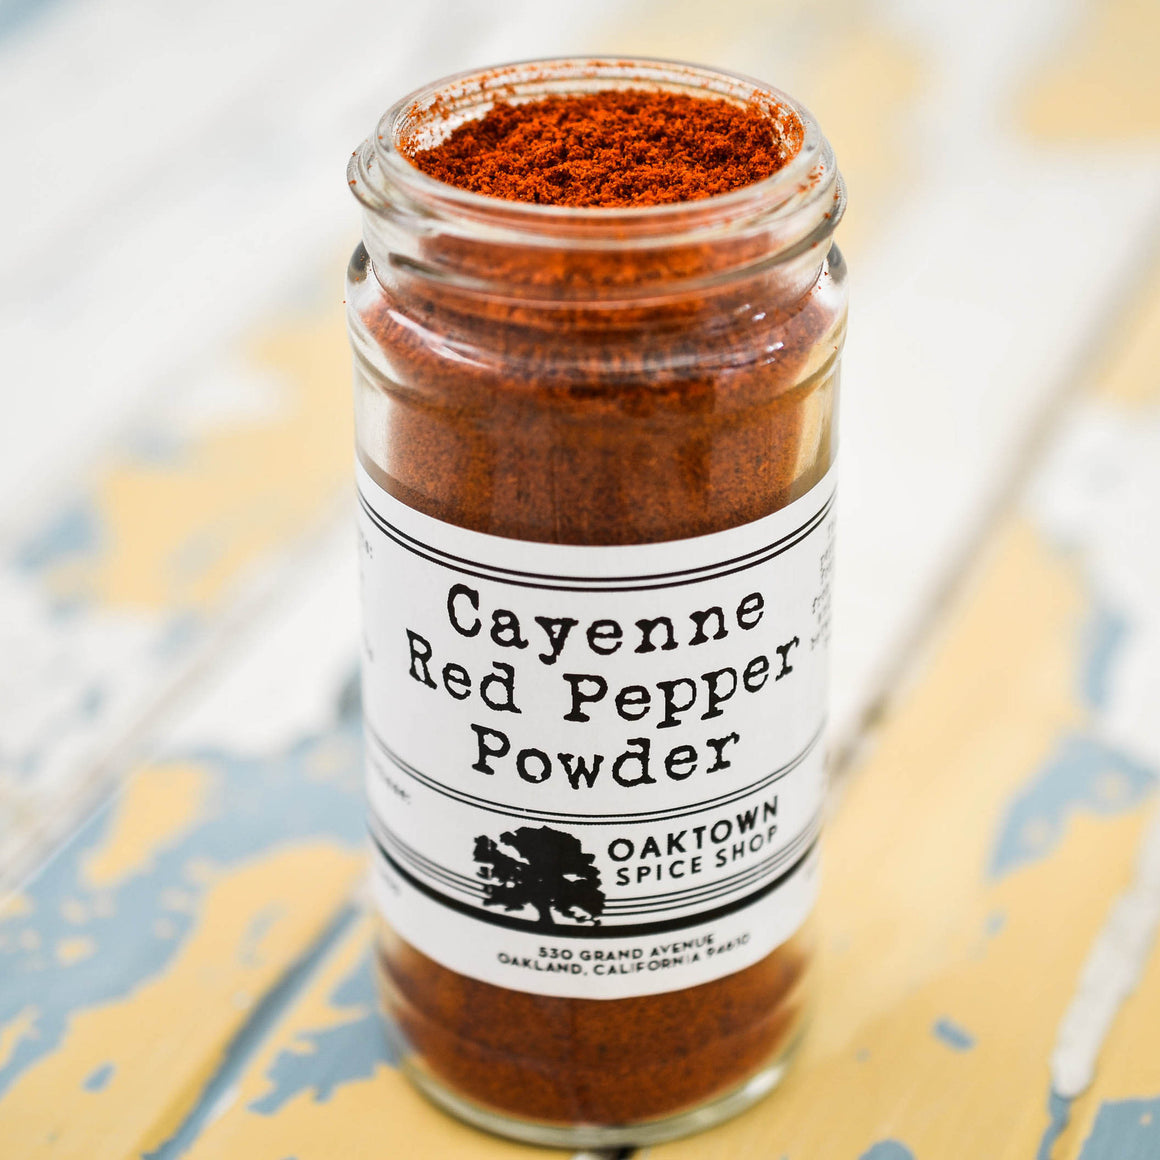 Cayenne Red Pepper Powder